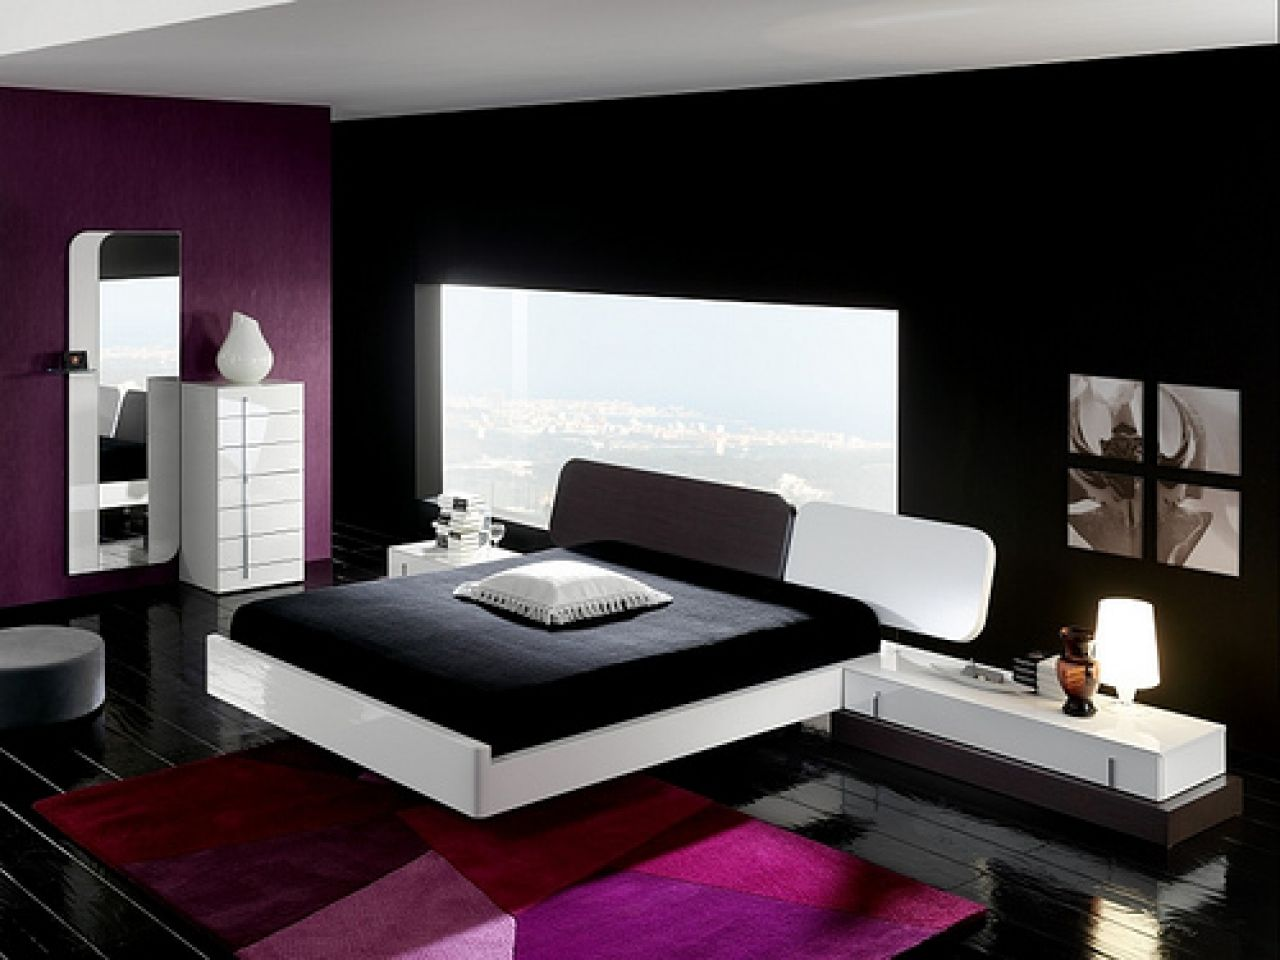 here is black and white and purple bedrooms decor and design theme ideas photo collections at modern bedroom design catalogue more picture design black and - Purple Black And White Room